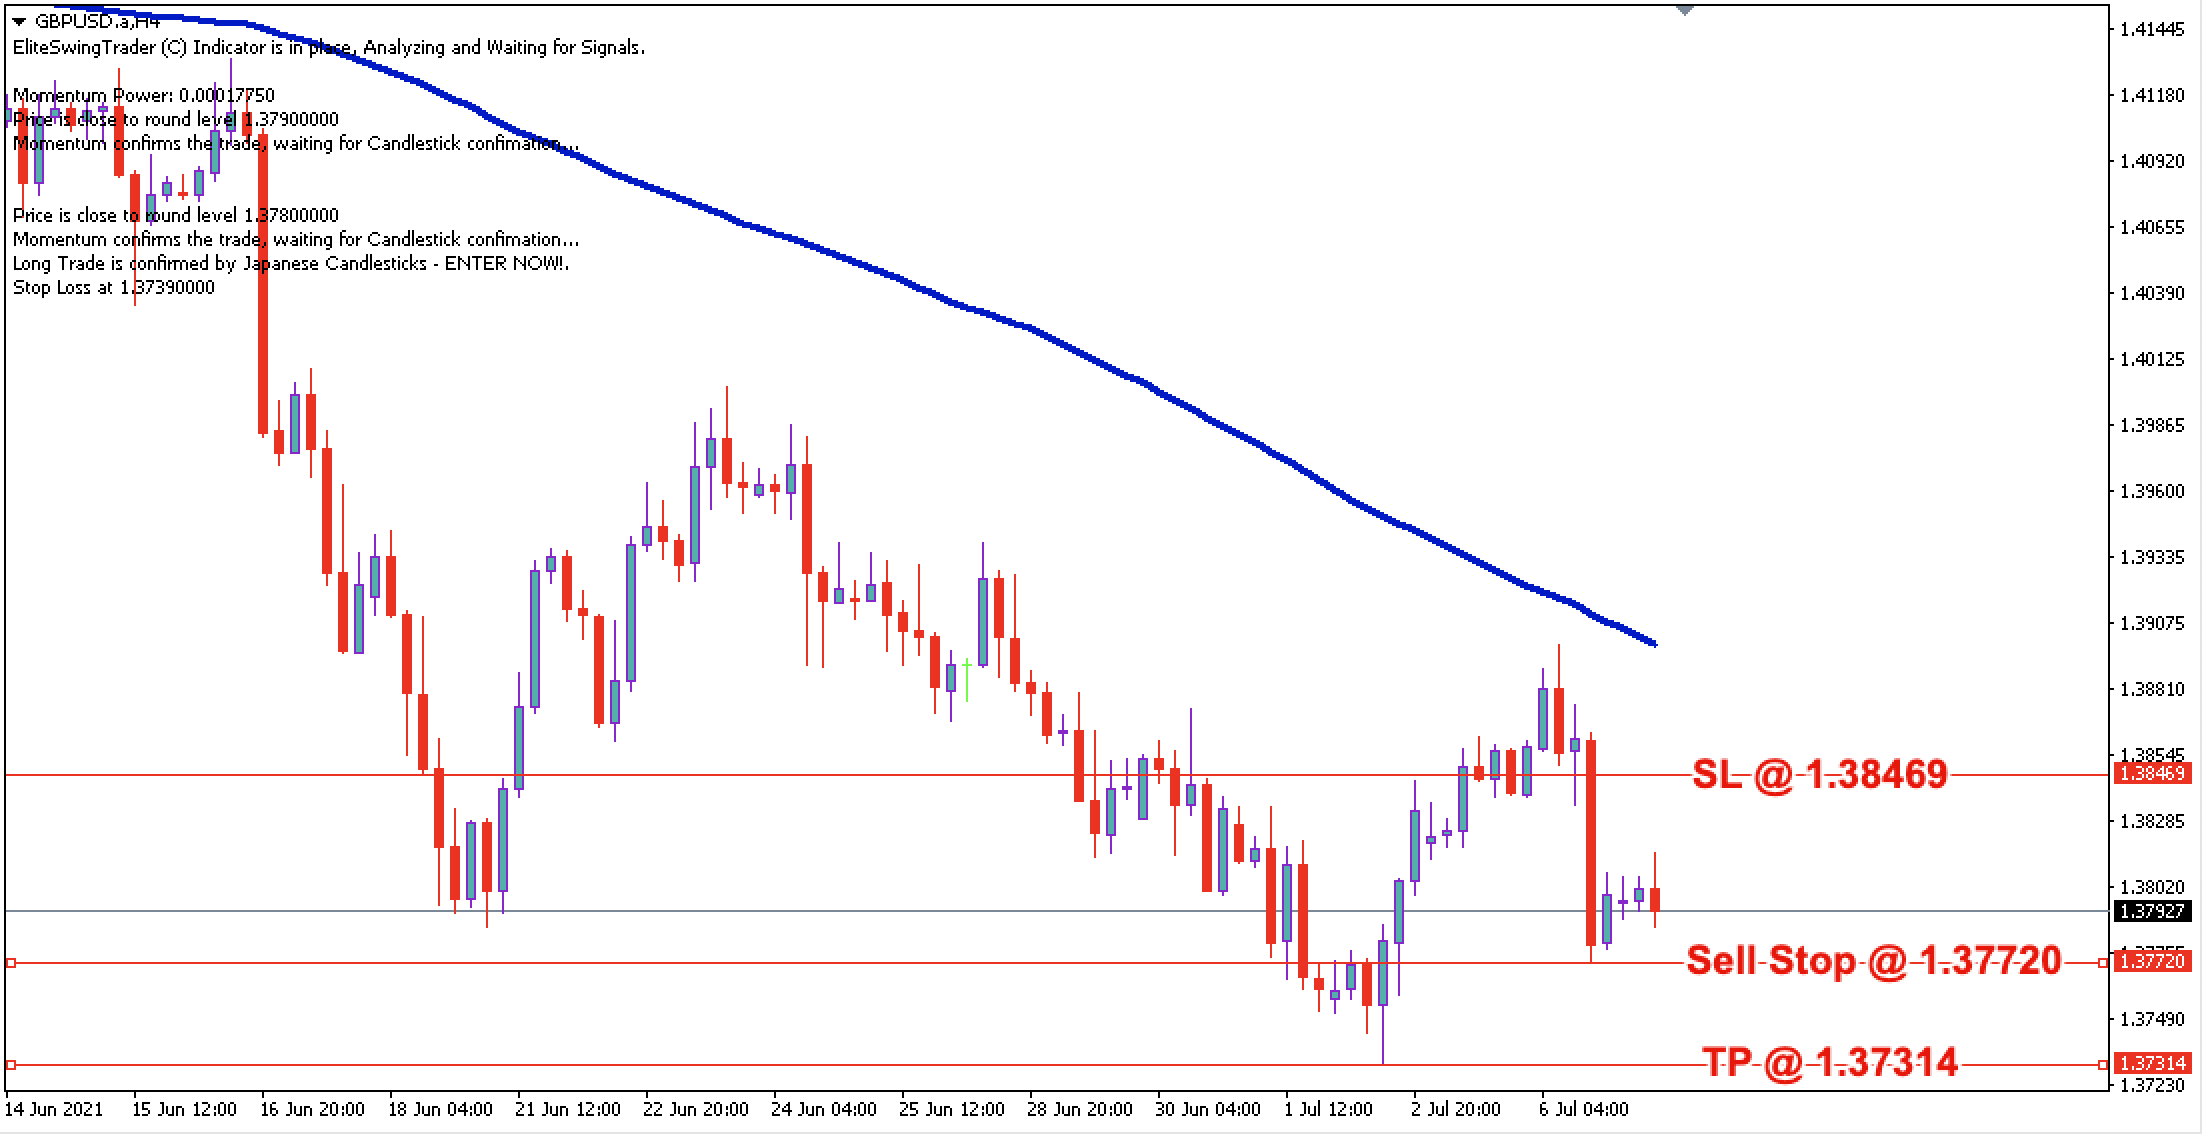 GBP/USD Daily Price Forecast – 7th July 2021